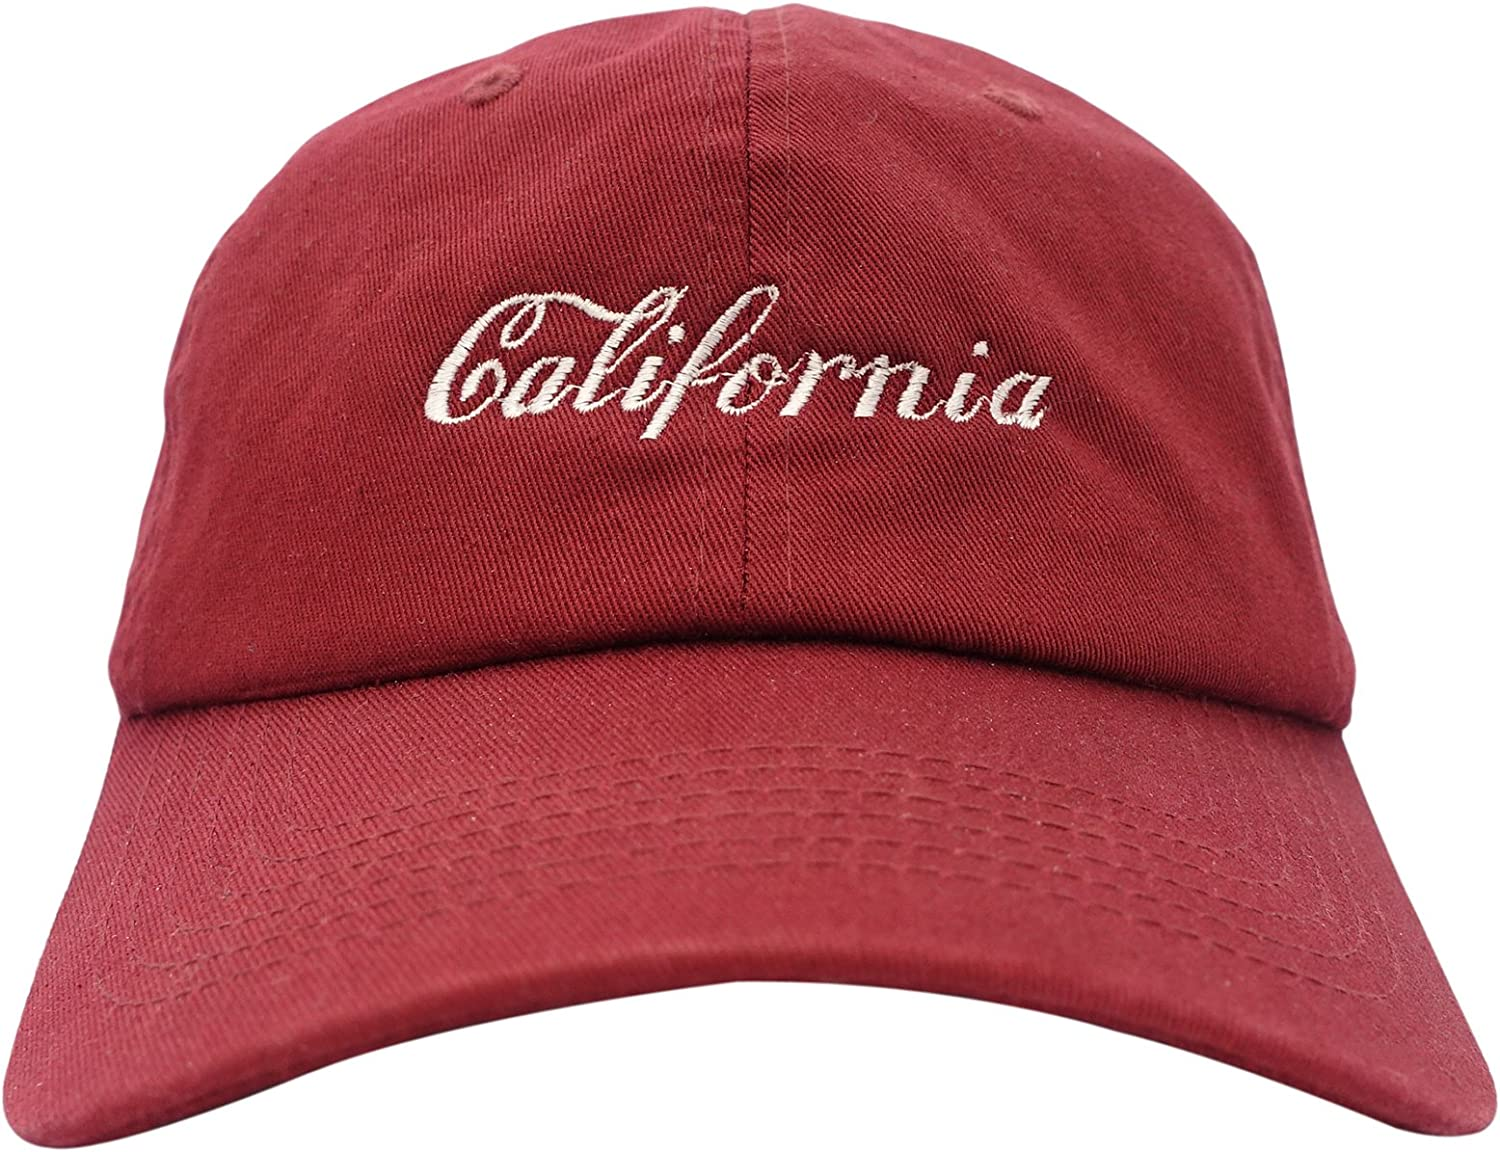 California Unstructured Six Panel Adjustable Dad Hat 100/% Cotton